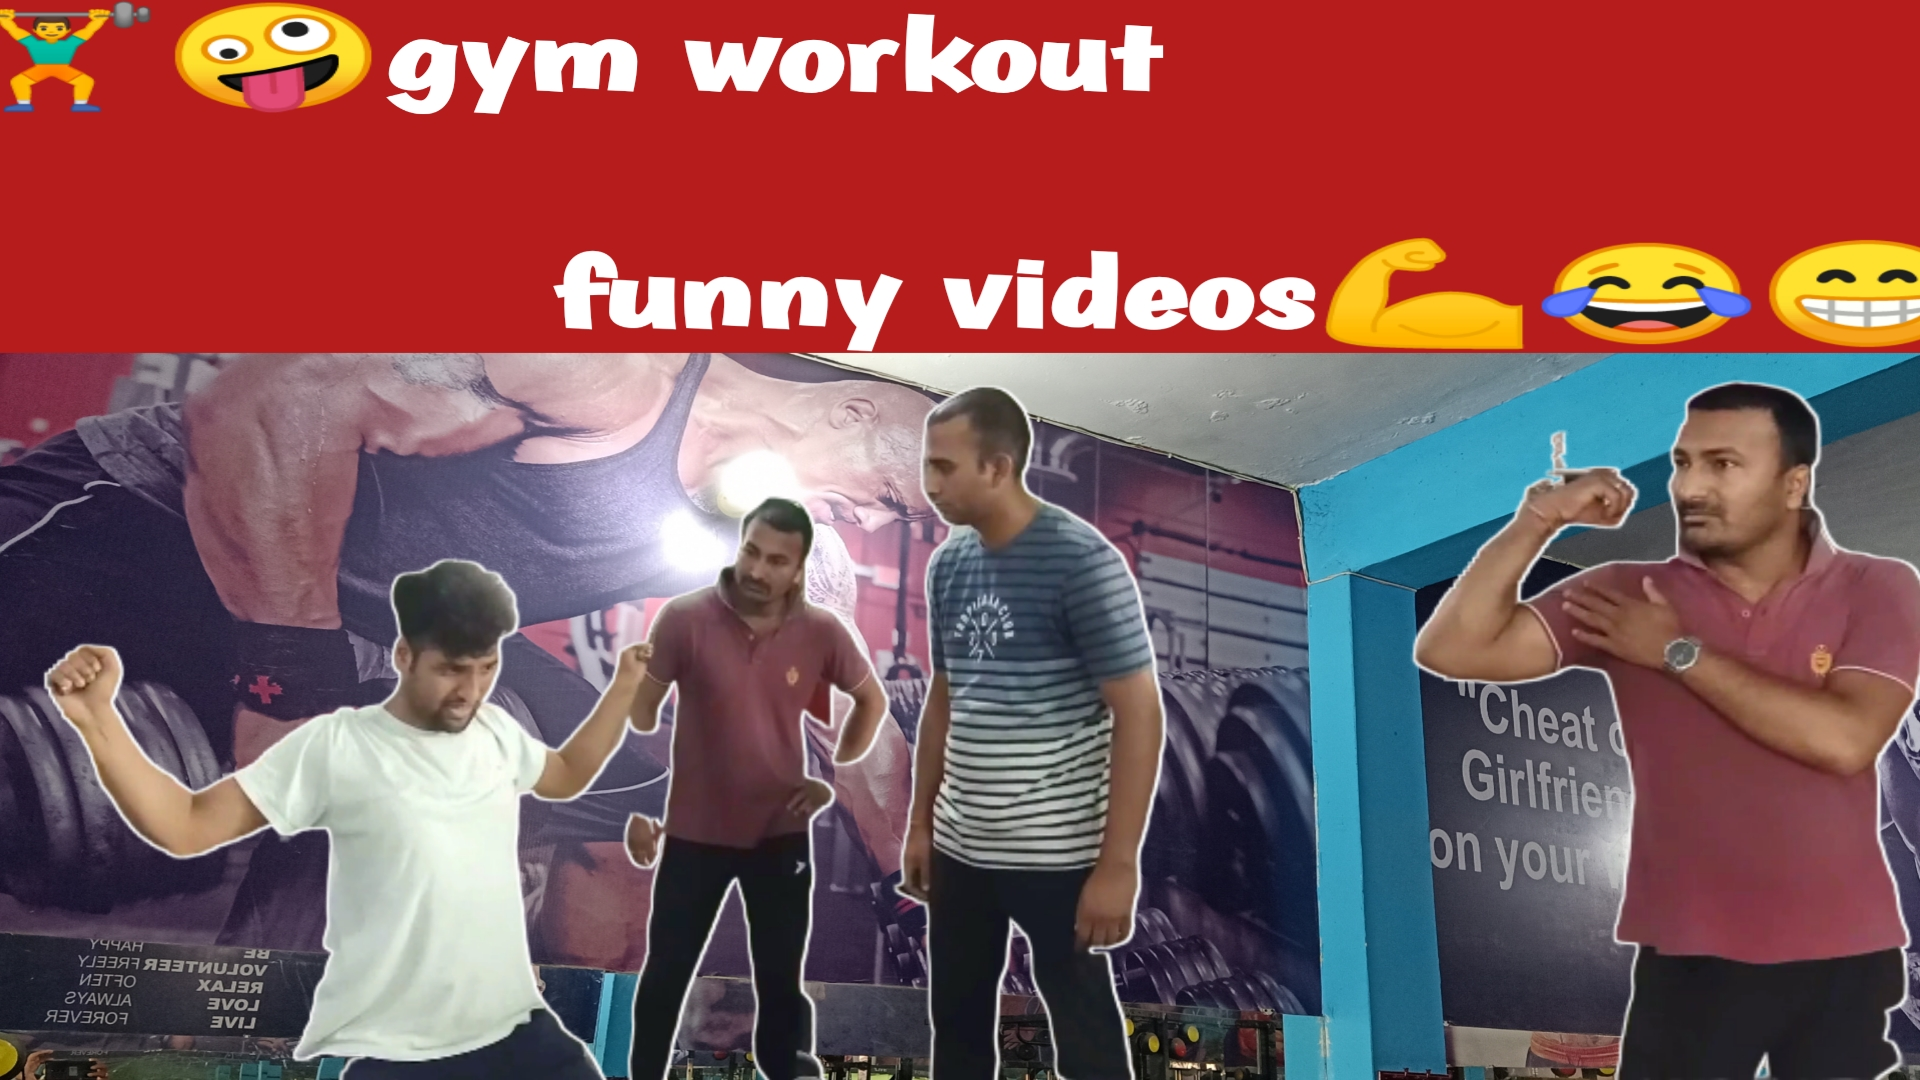 gym workout funny videos